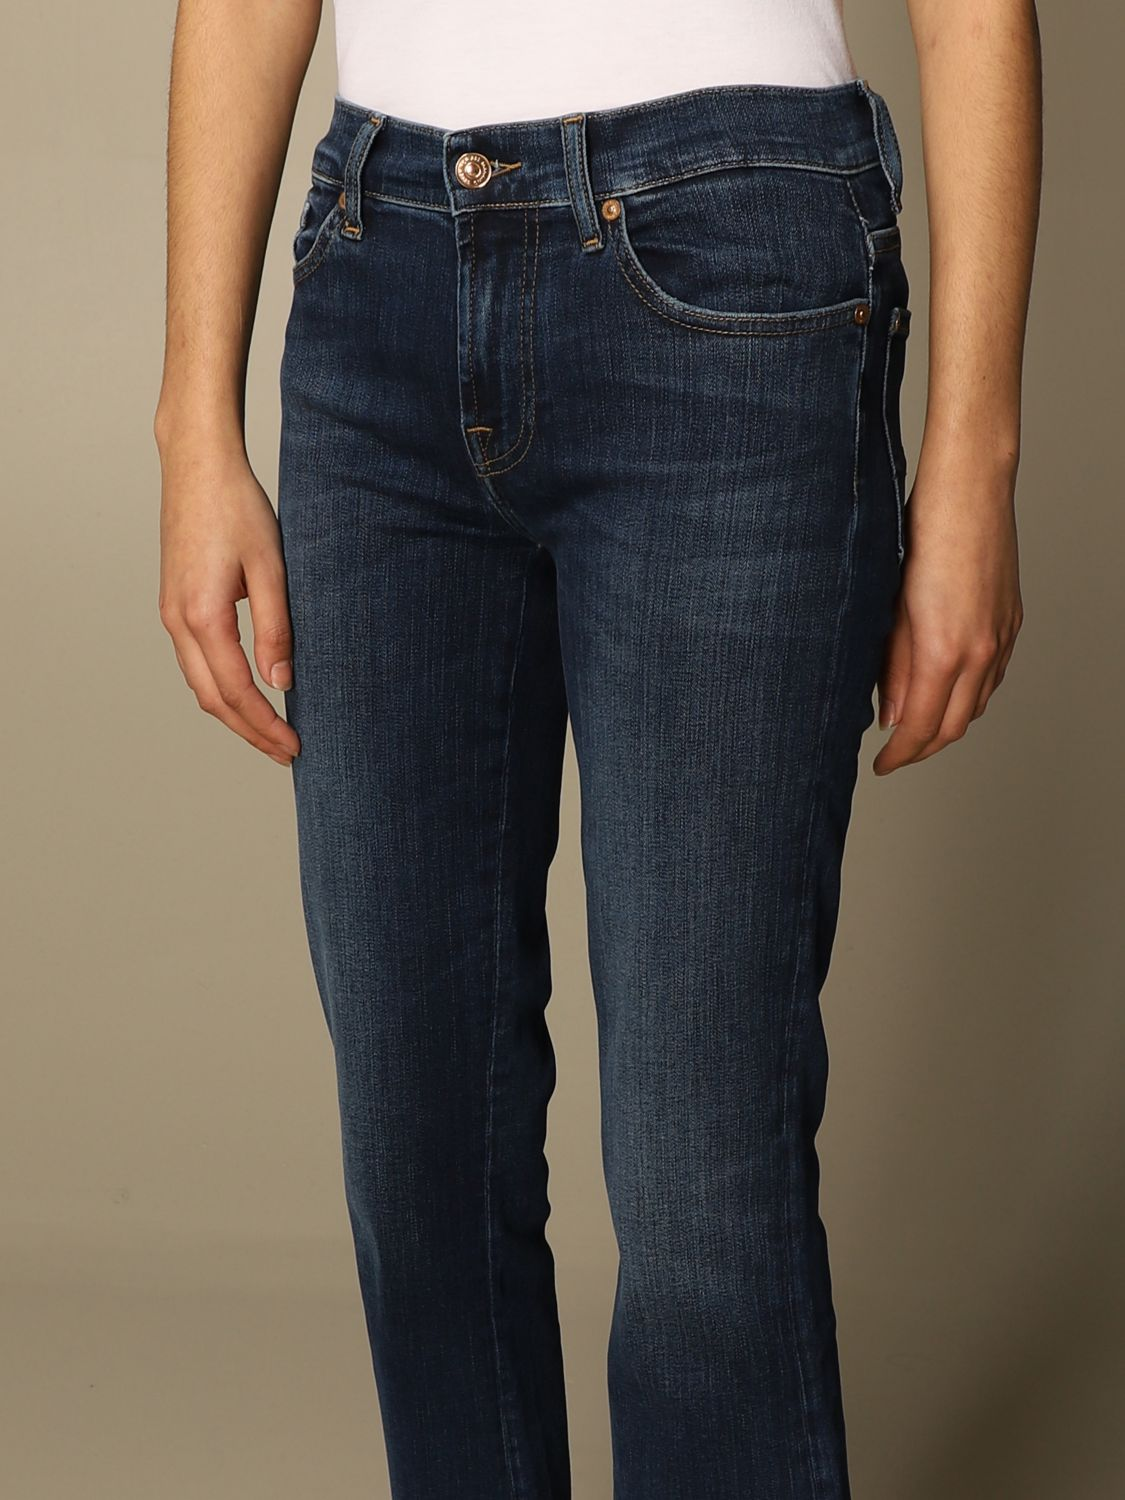 Jeans 7 For All Mankind: Jeans mujer 7 For All Mankind azul oscuro 3